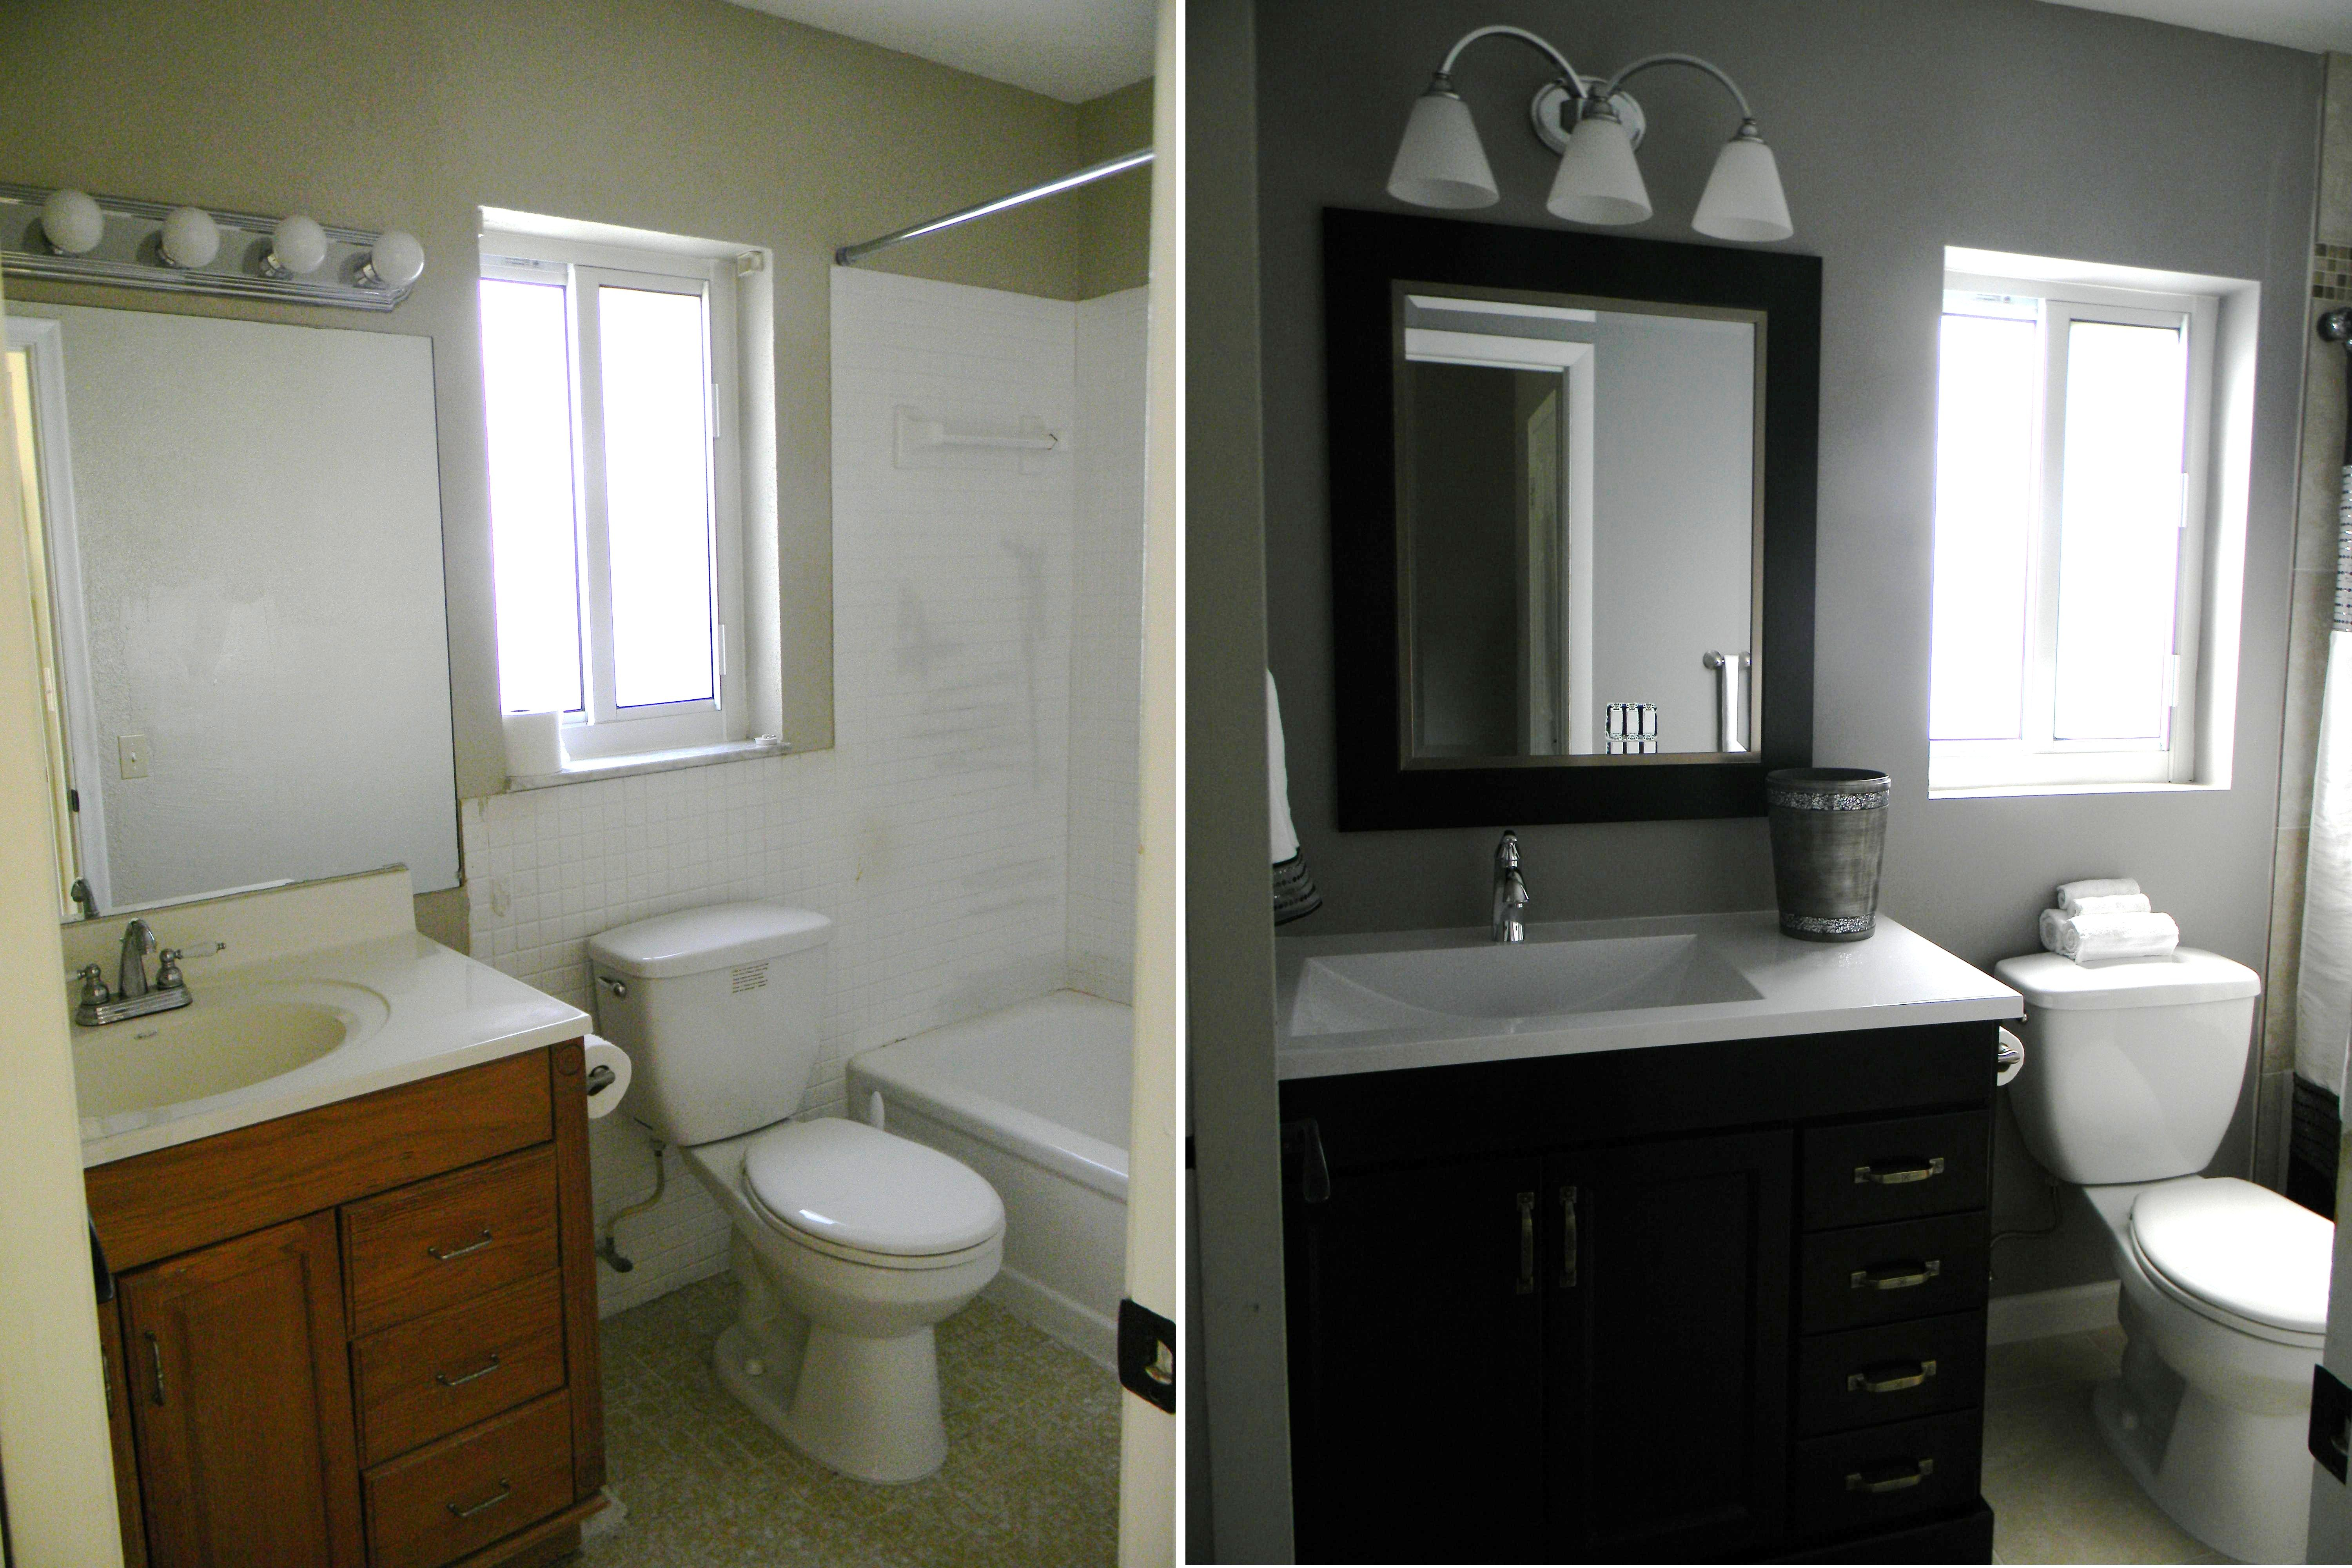 My Small Bathroom Renovation Under Budget And Ahead Of Schedule - Inexpensive bathroom renovations